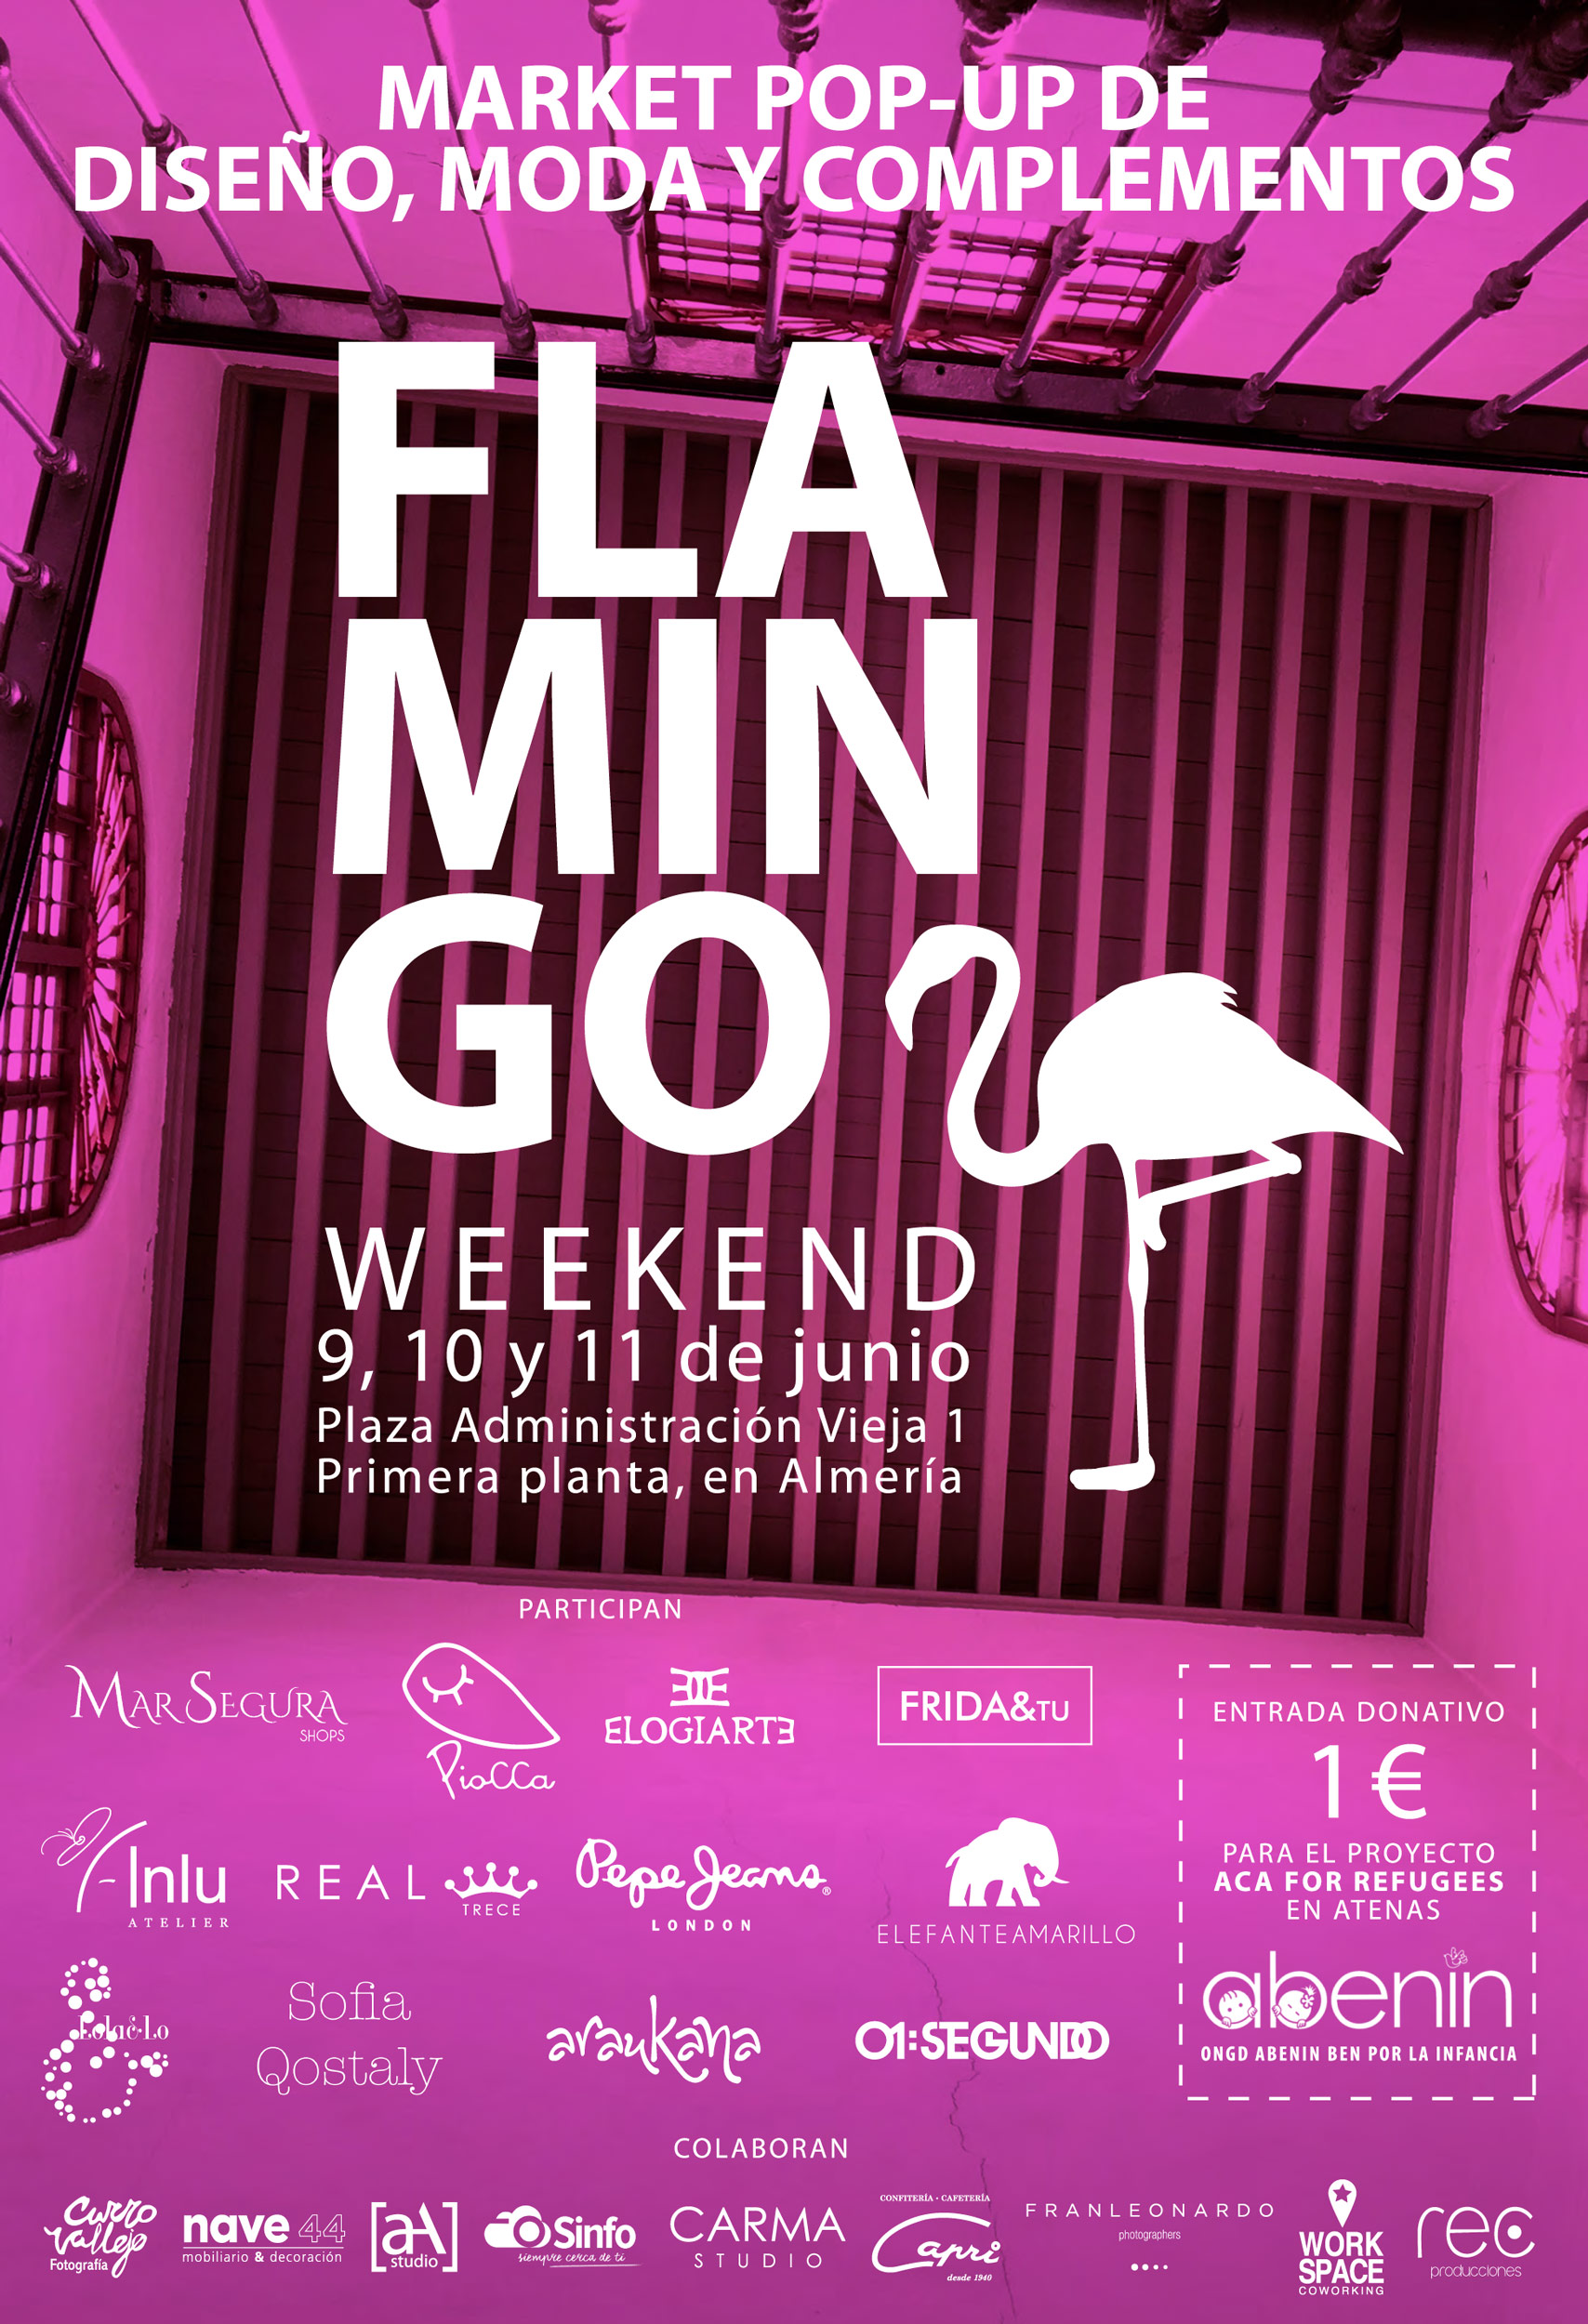 Flamingo weekend 9,10,11 de junio